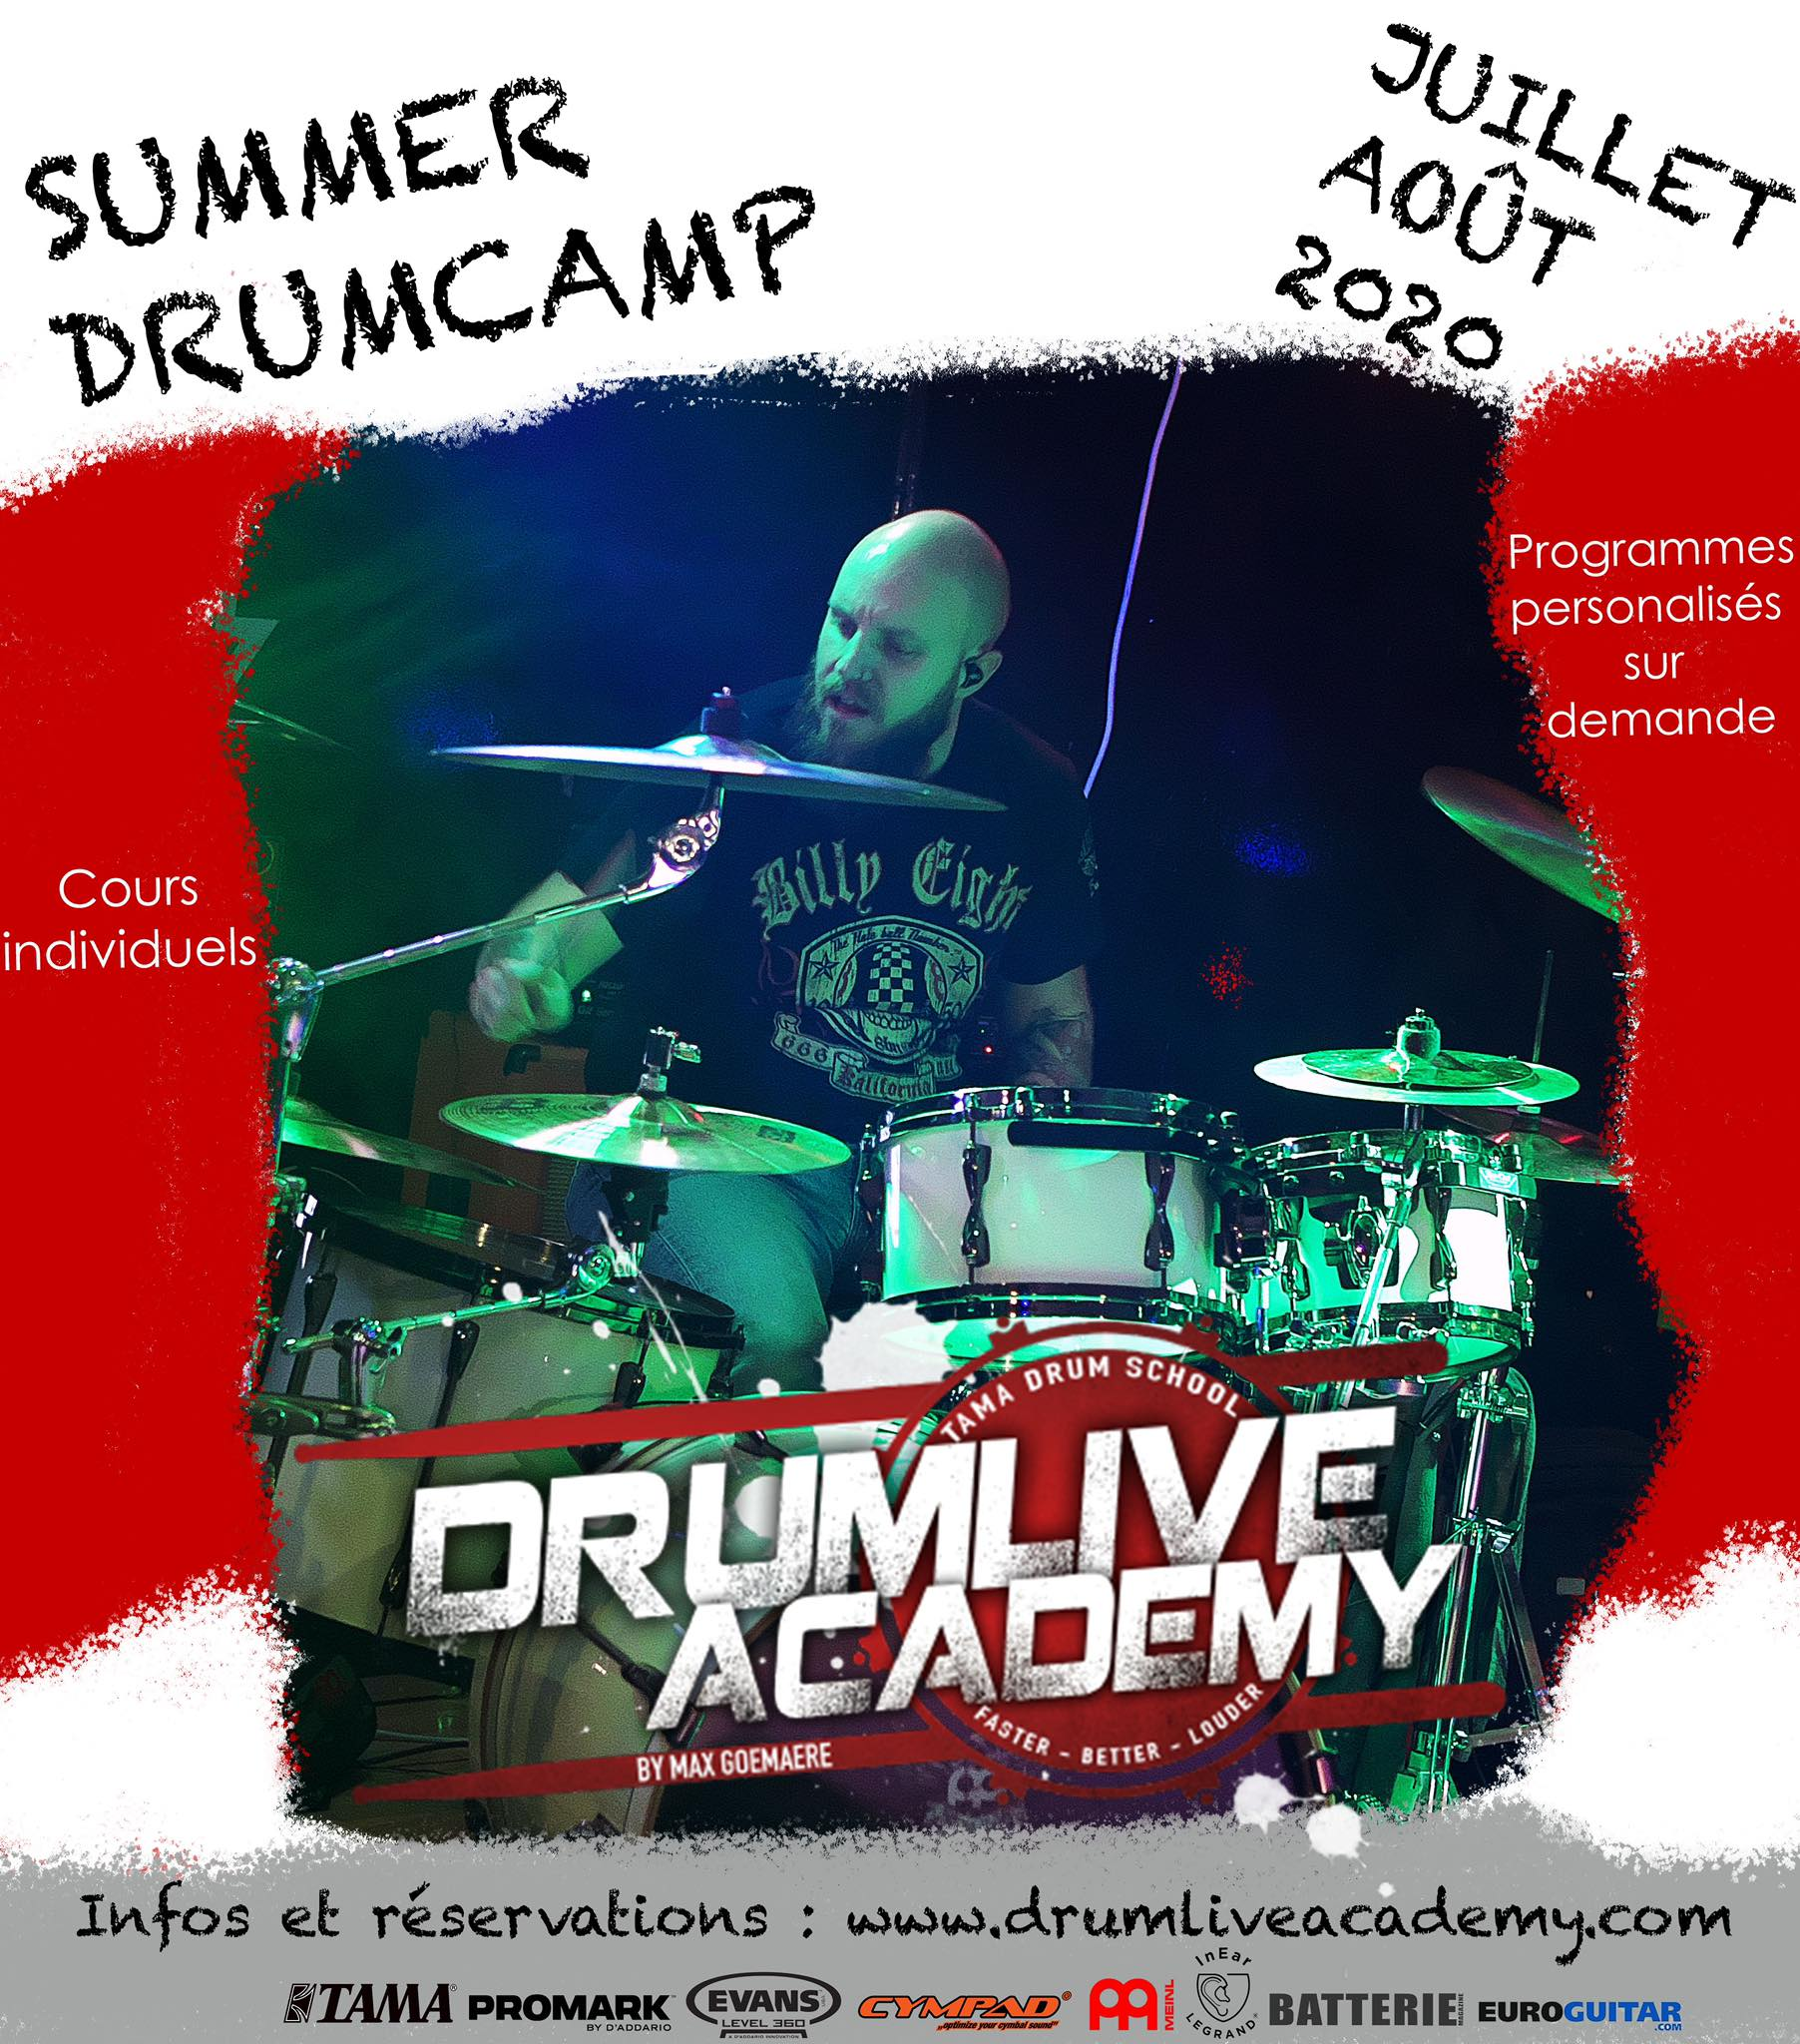 Summer Drum Camp 2020, Stage intensif de batterie, en cours individuels.